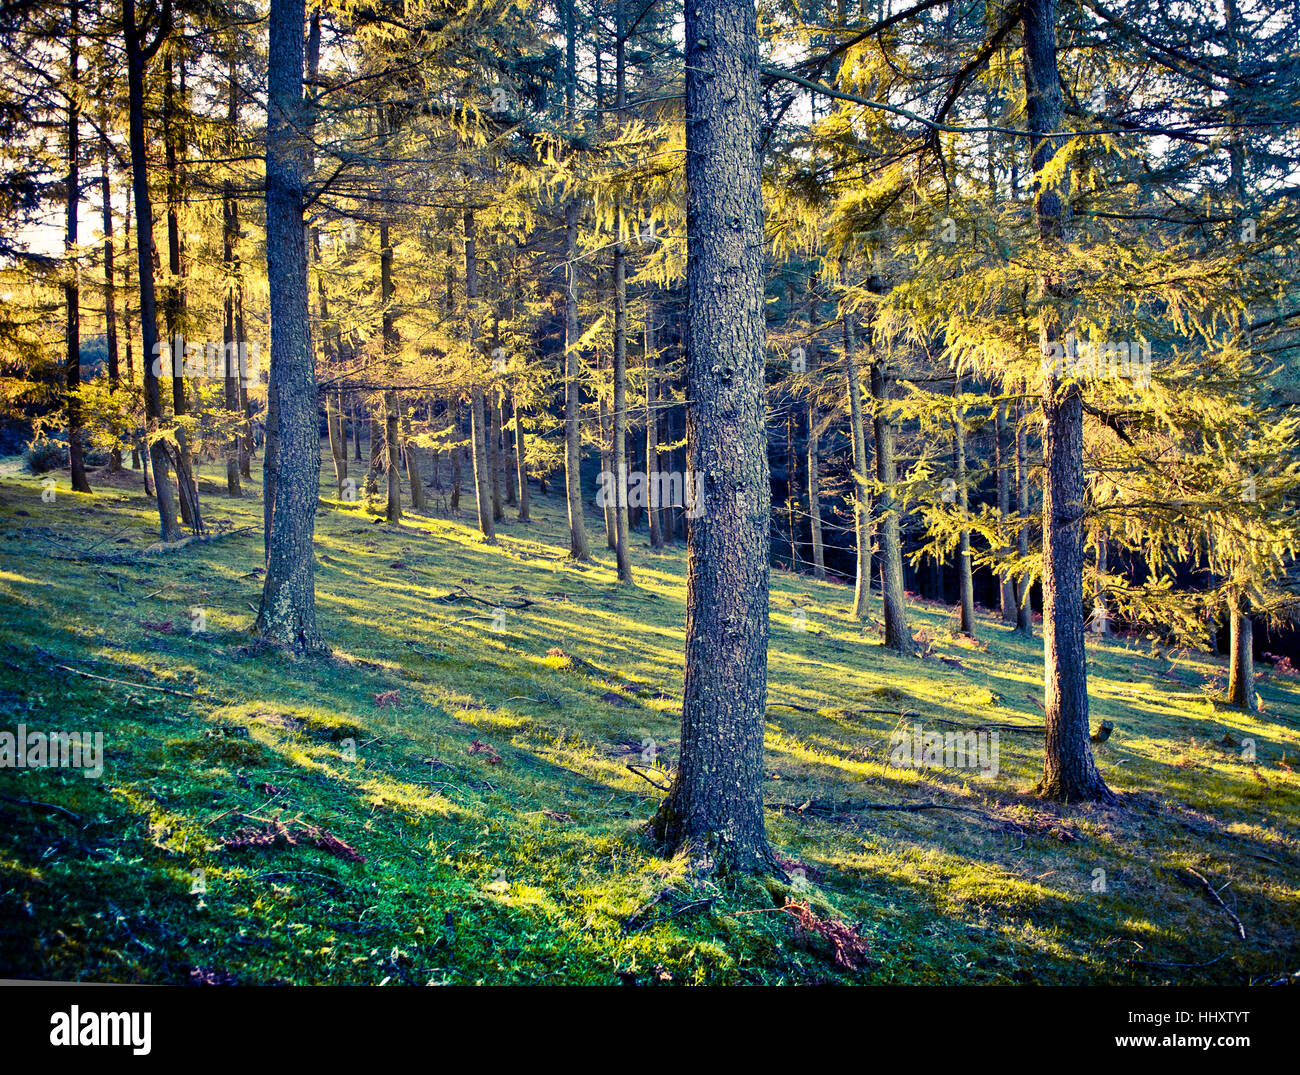 Conifer forest landscape in autumn. - Stock Image